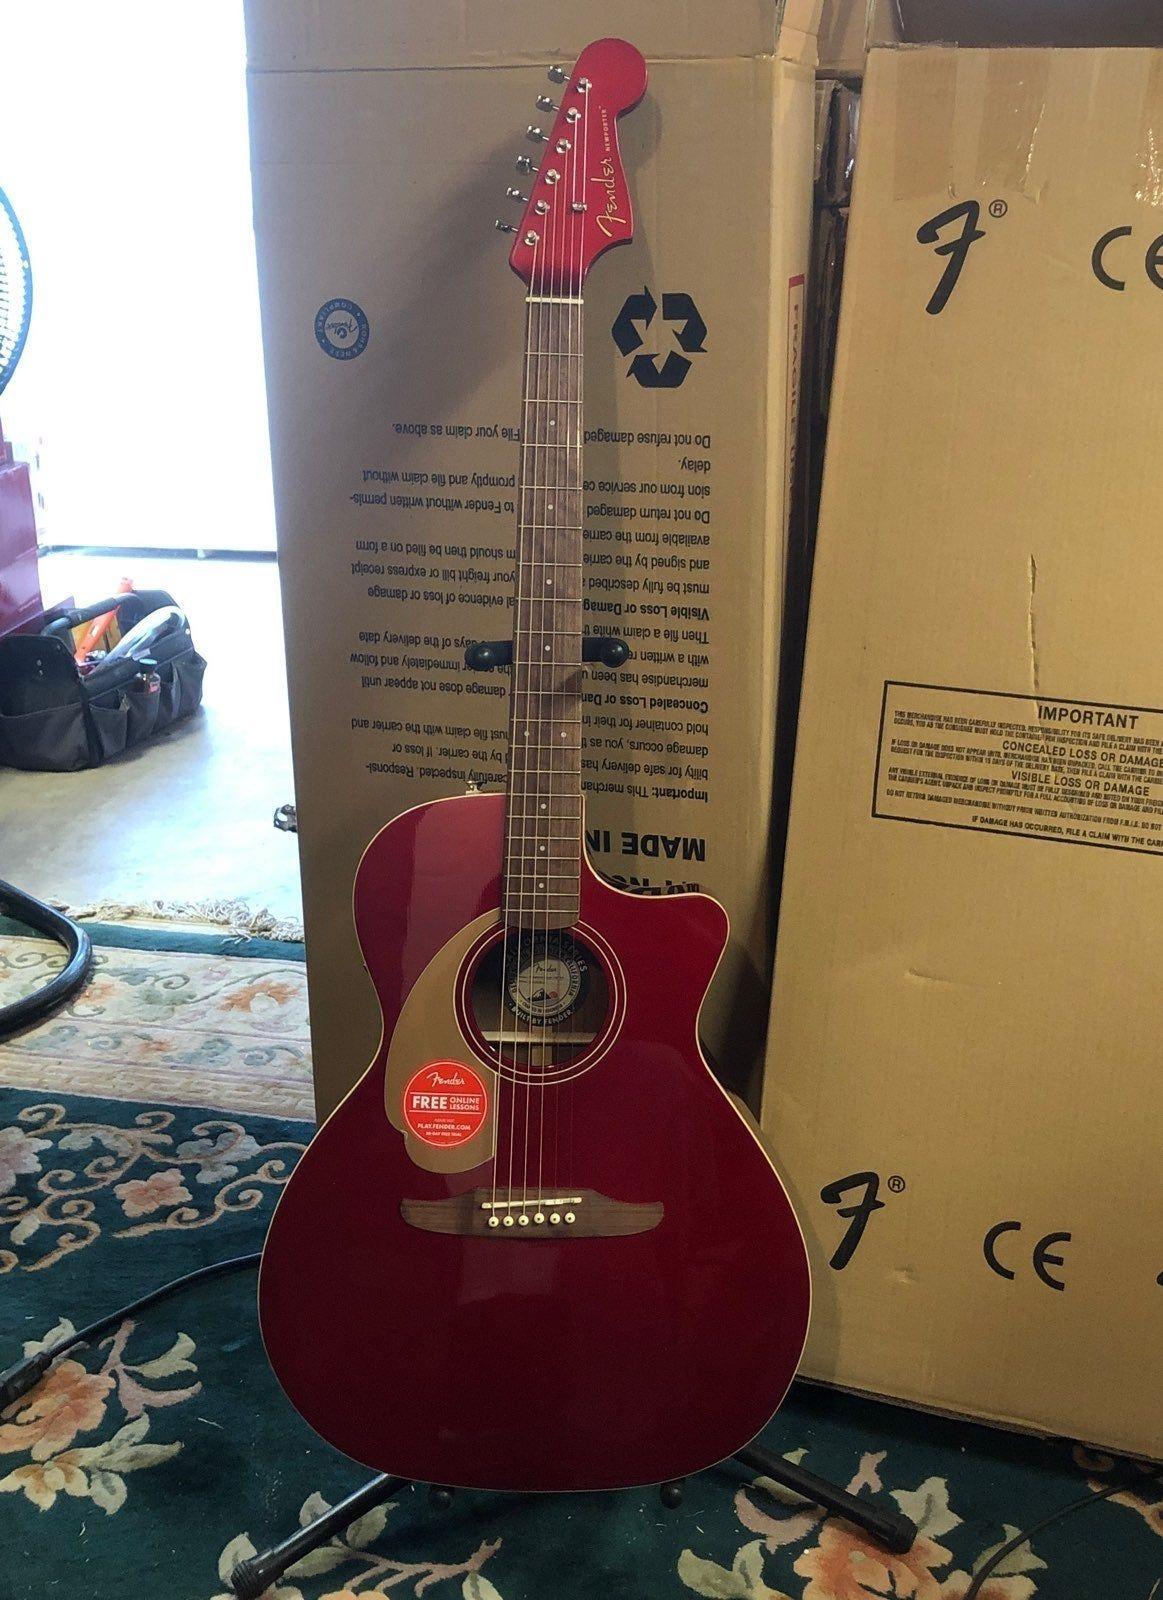 Fender Newport Player Acoustic Electric Guitar Real Nice Cherry Finish Guitar Sounds And Plays Good Made In Indonesia New In Box Guitar Fender Guitars Fender